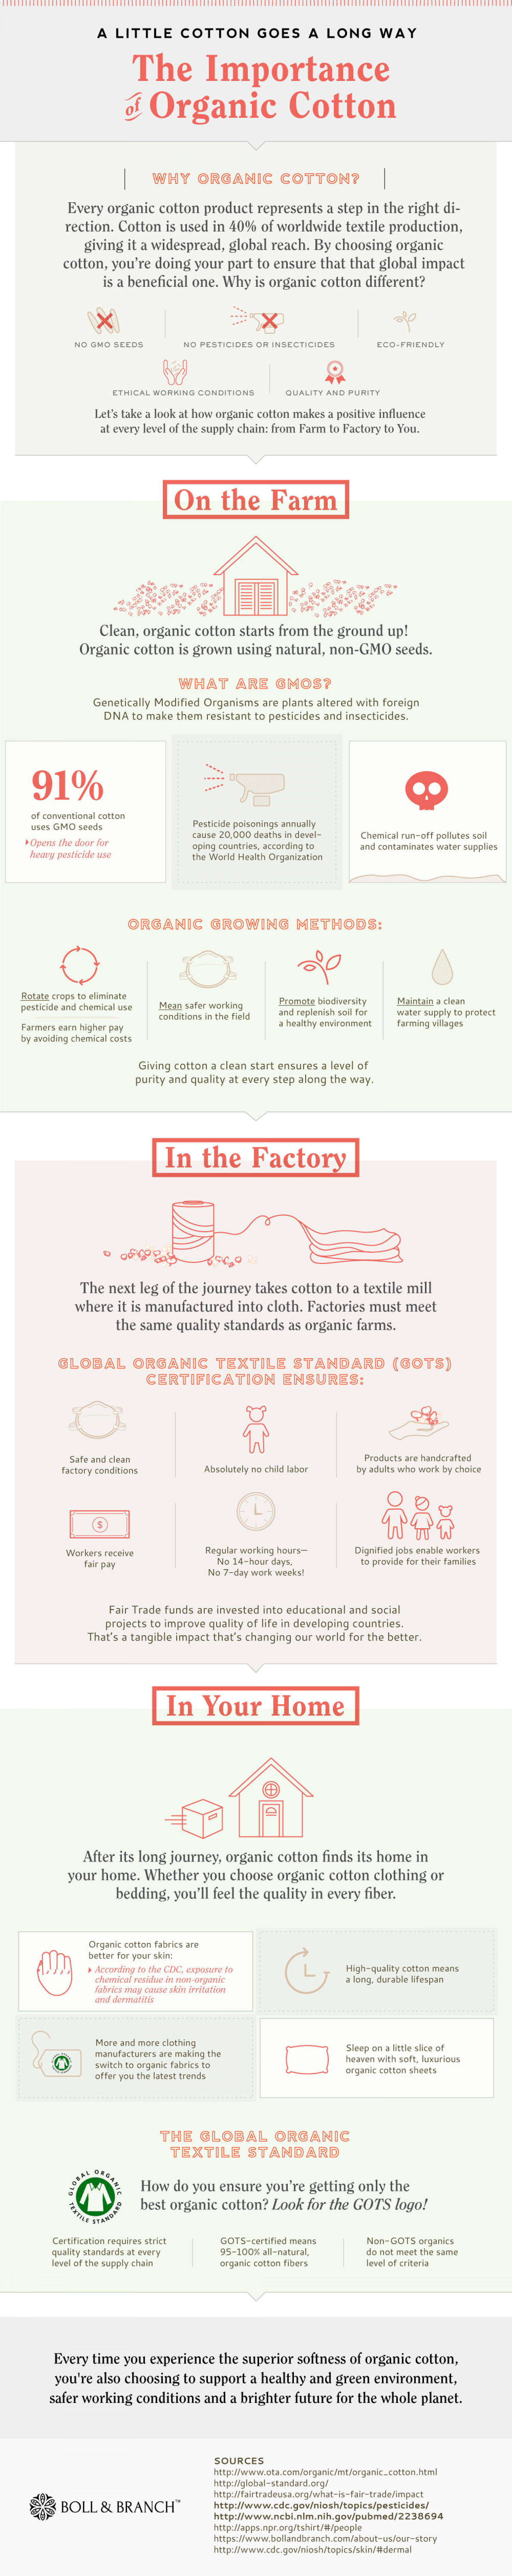 The Importance of Organic Cotton Infographic